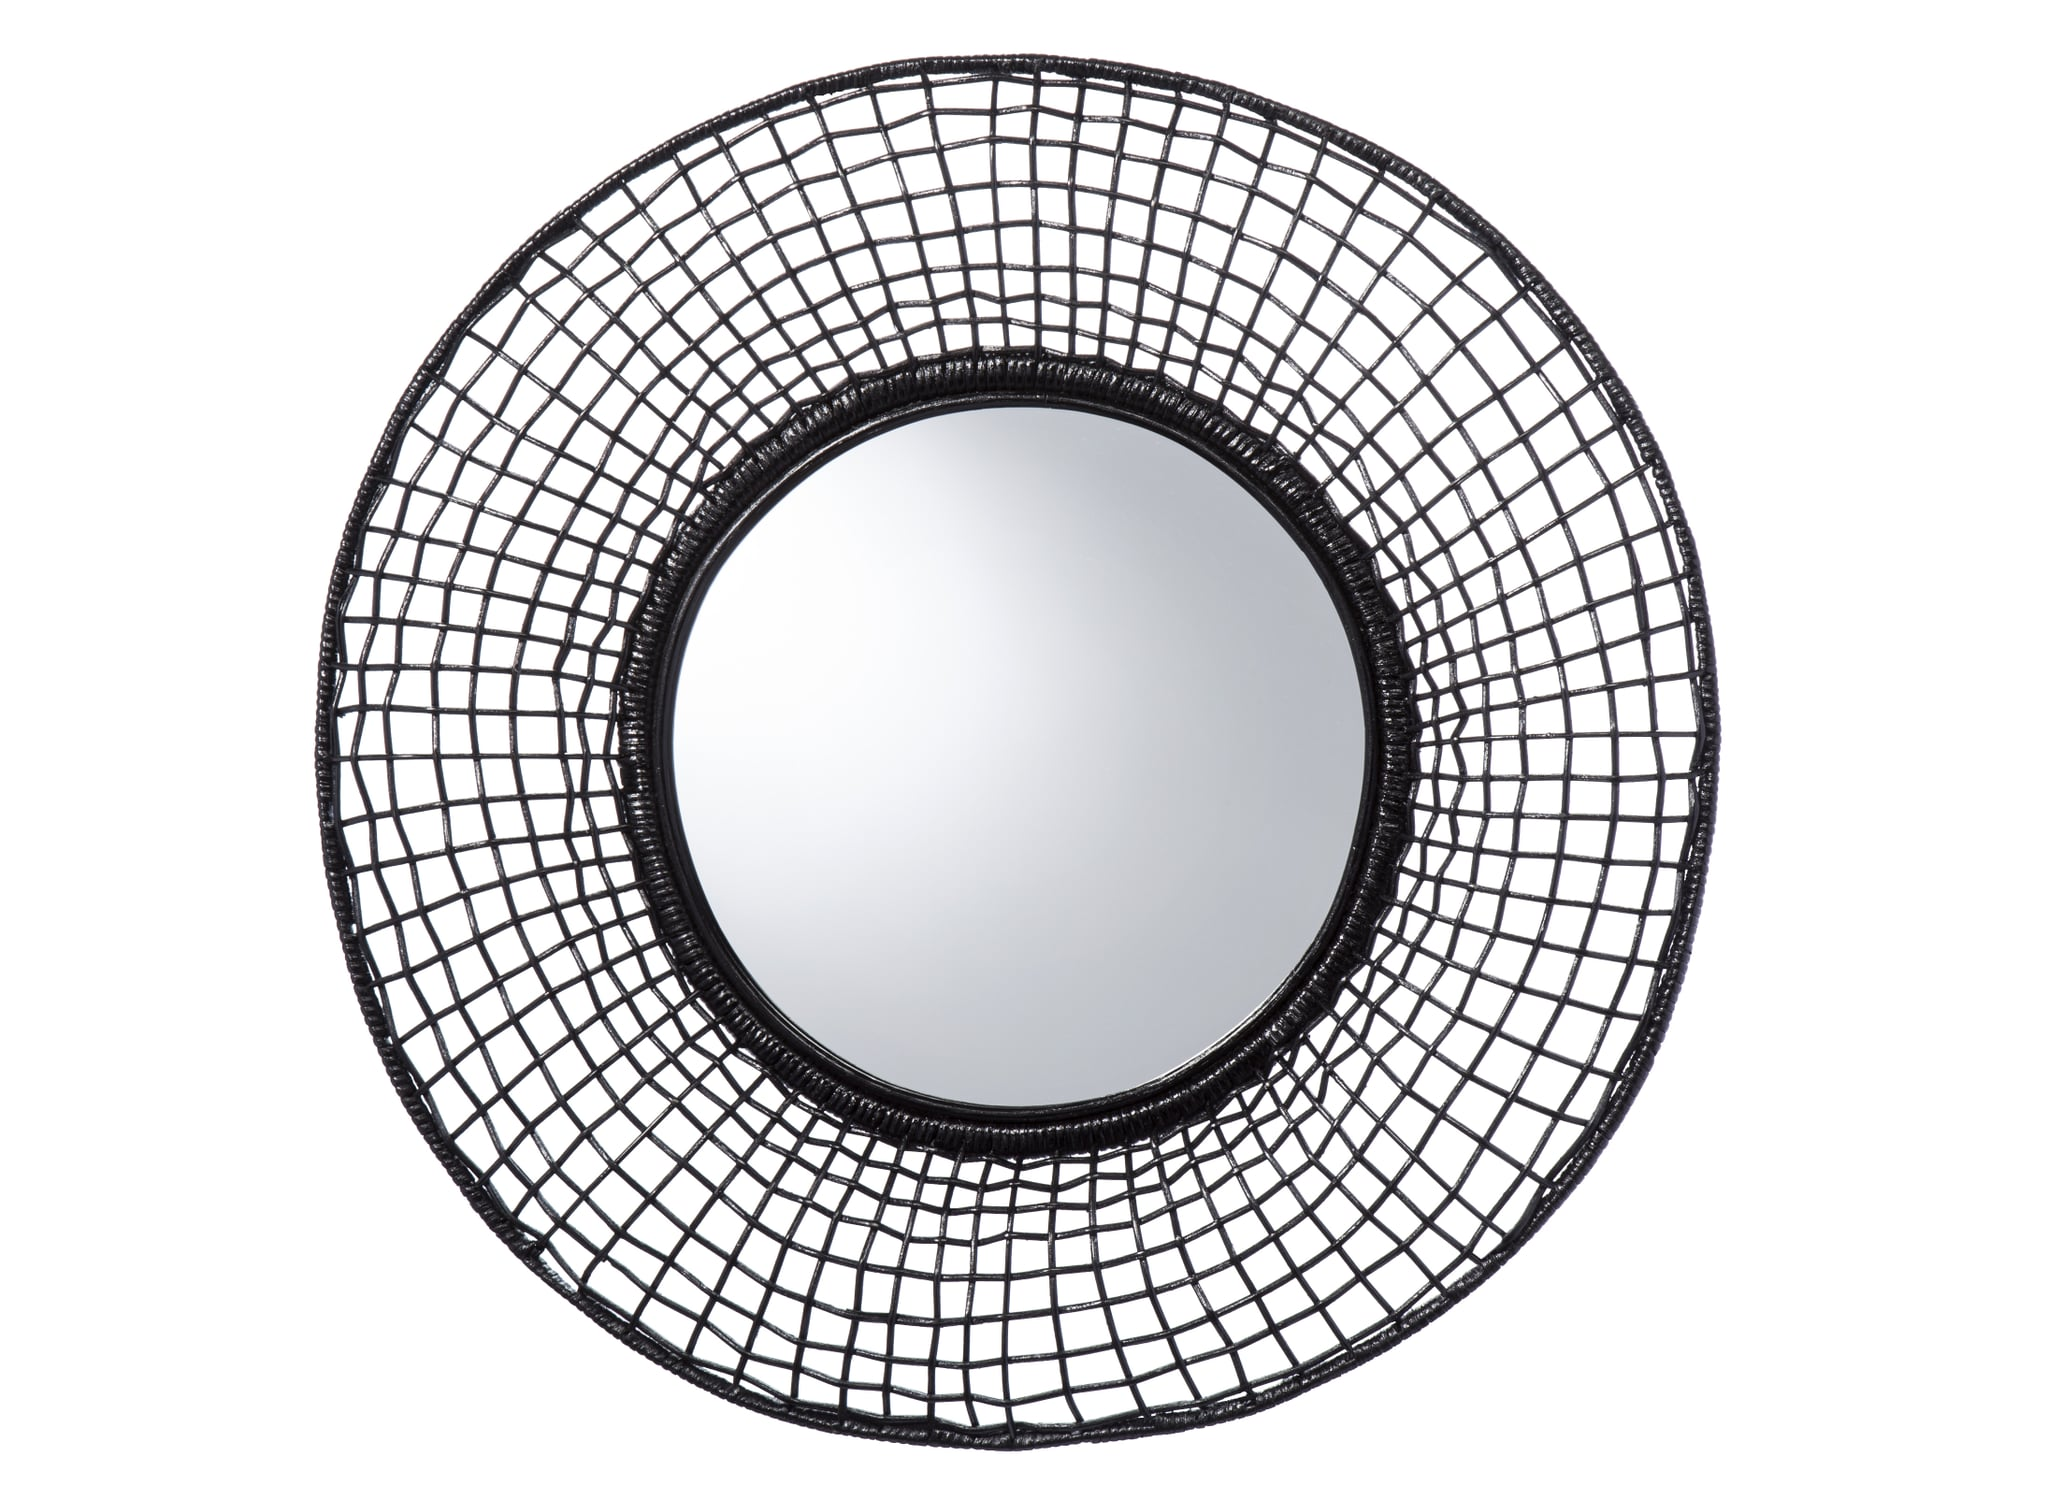 Rattan Wall Mirror 50 Redecorating Your Home Just Got Really Affordable Thanks To This New Collection Popsugar Home Photo 19